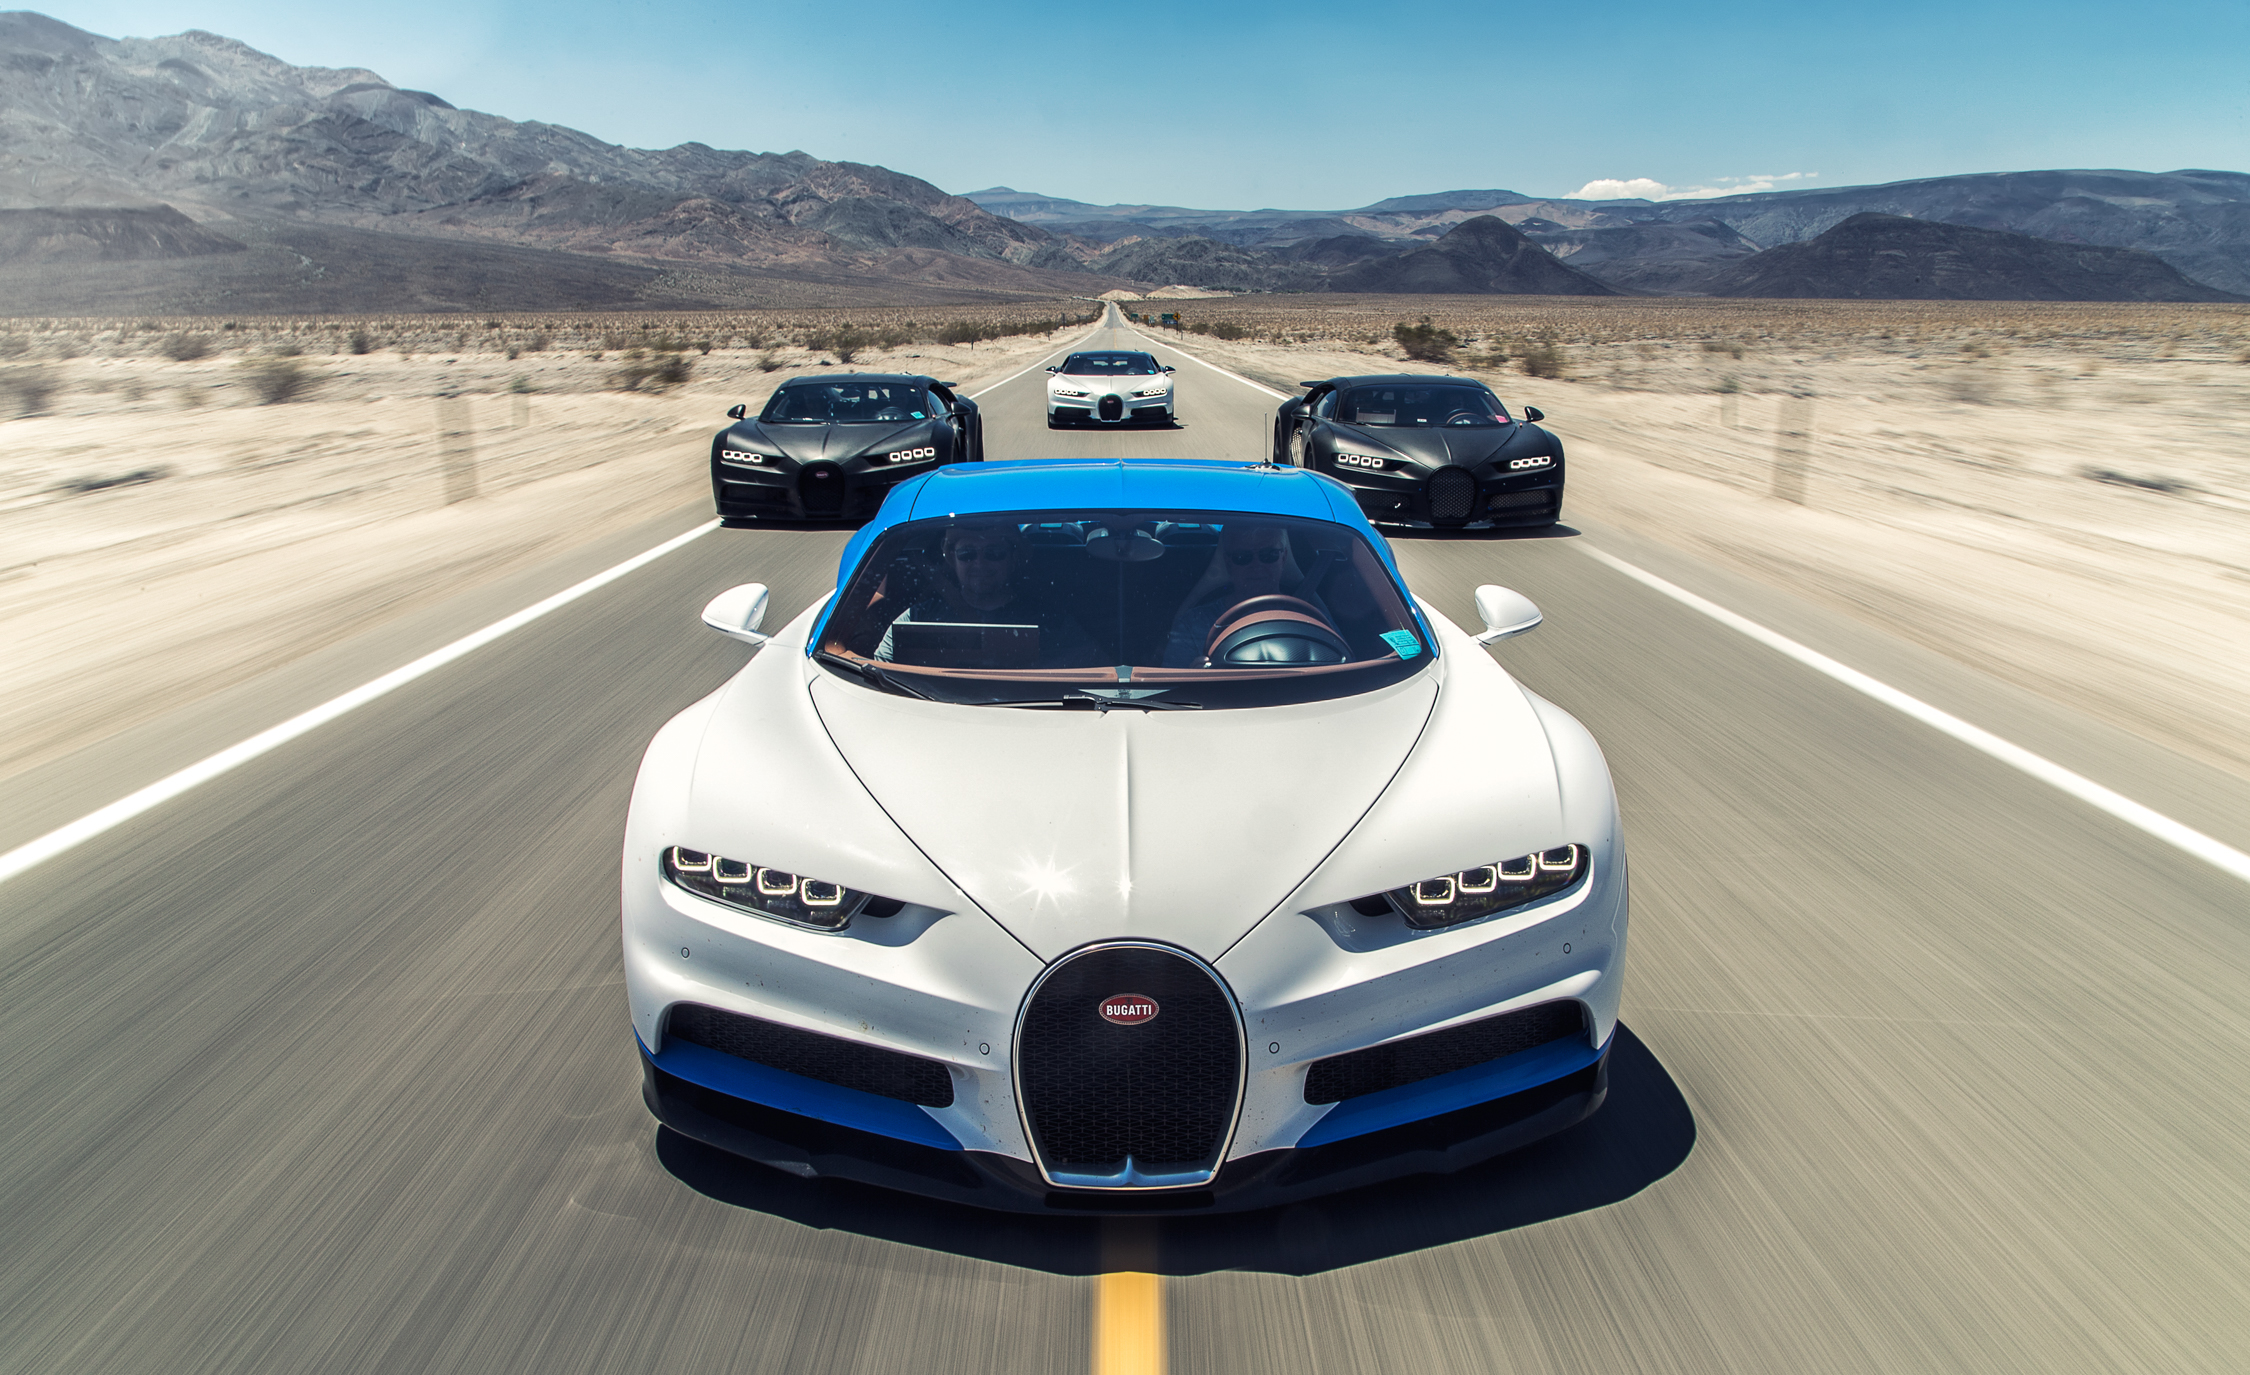 2017 Bugatti Chirons (Photo 5 of 5)